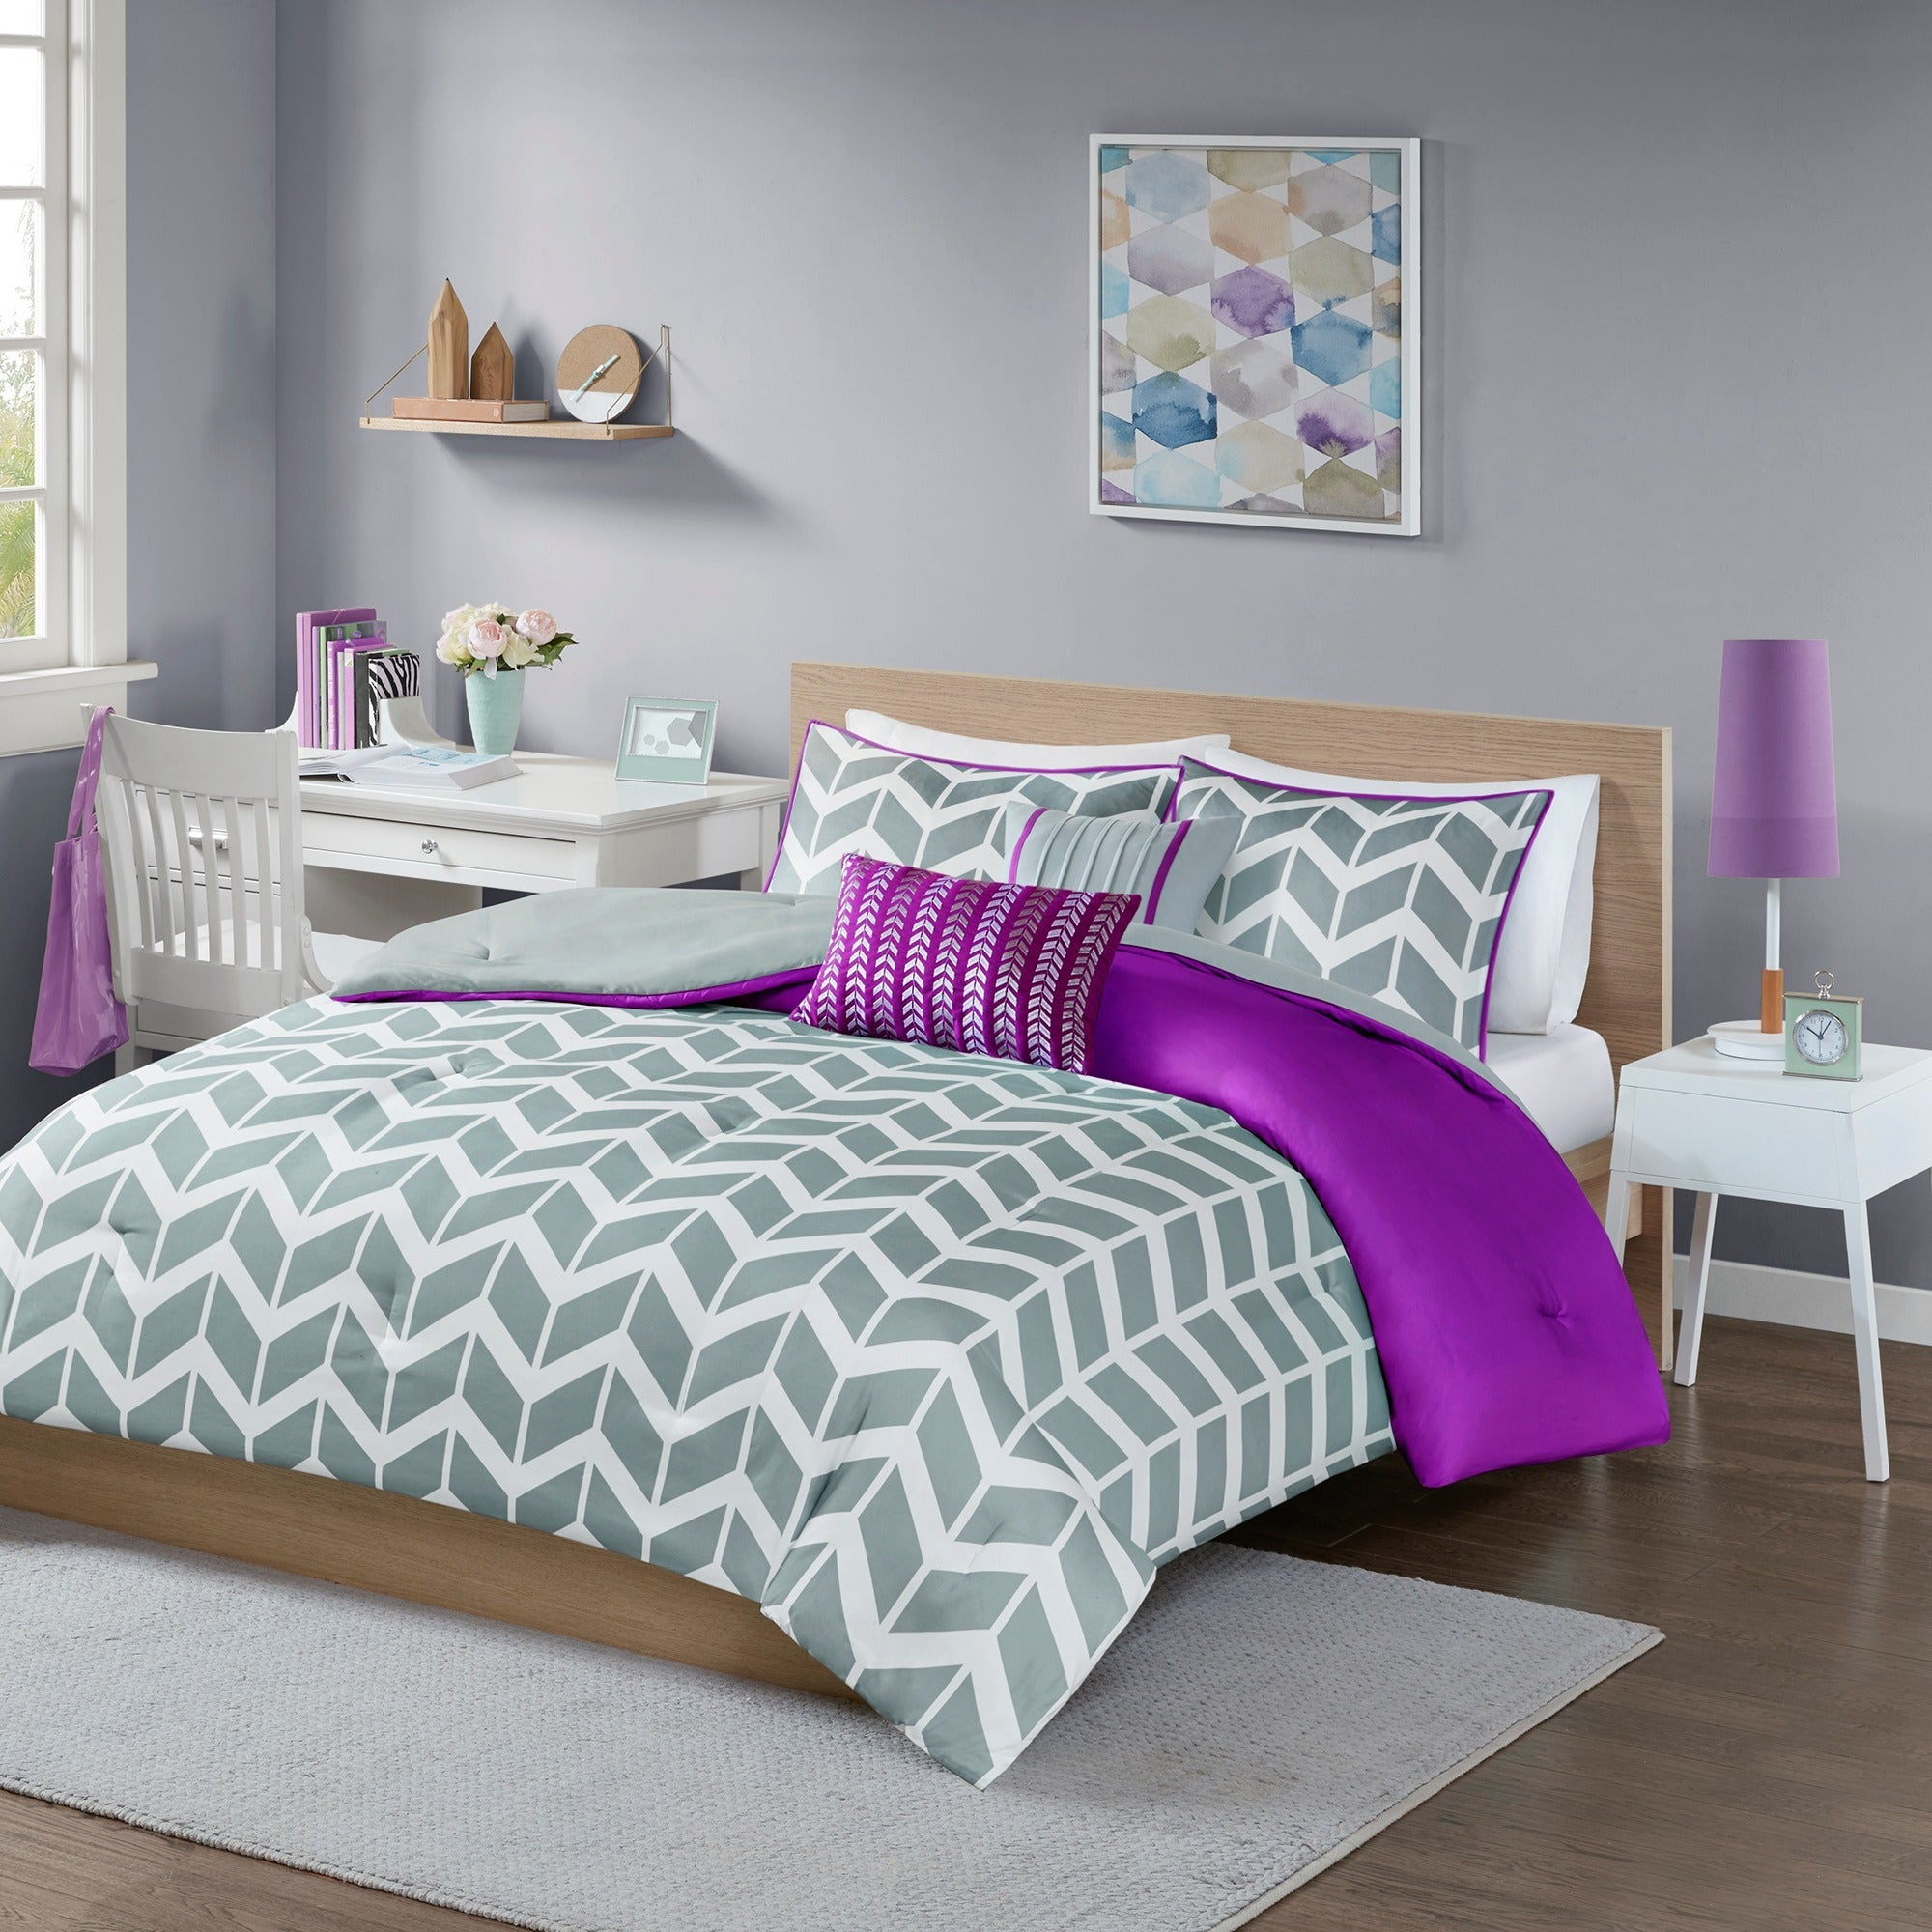 pink sets drop green bedroom gray comforter gorgeous piece alyssa set and ideas silver stunning queen white interior twin purple dacia